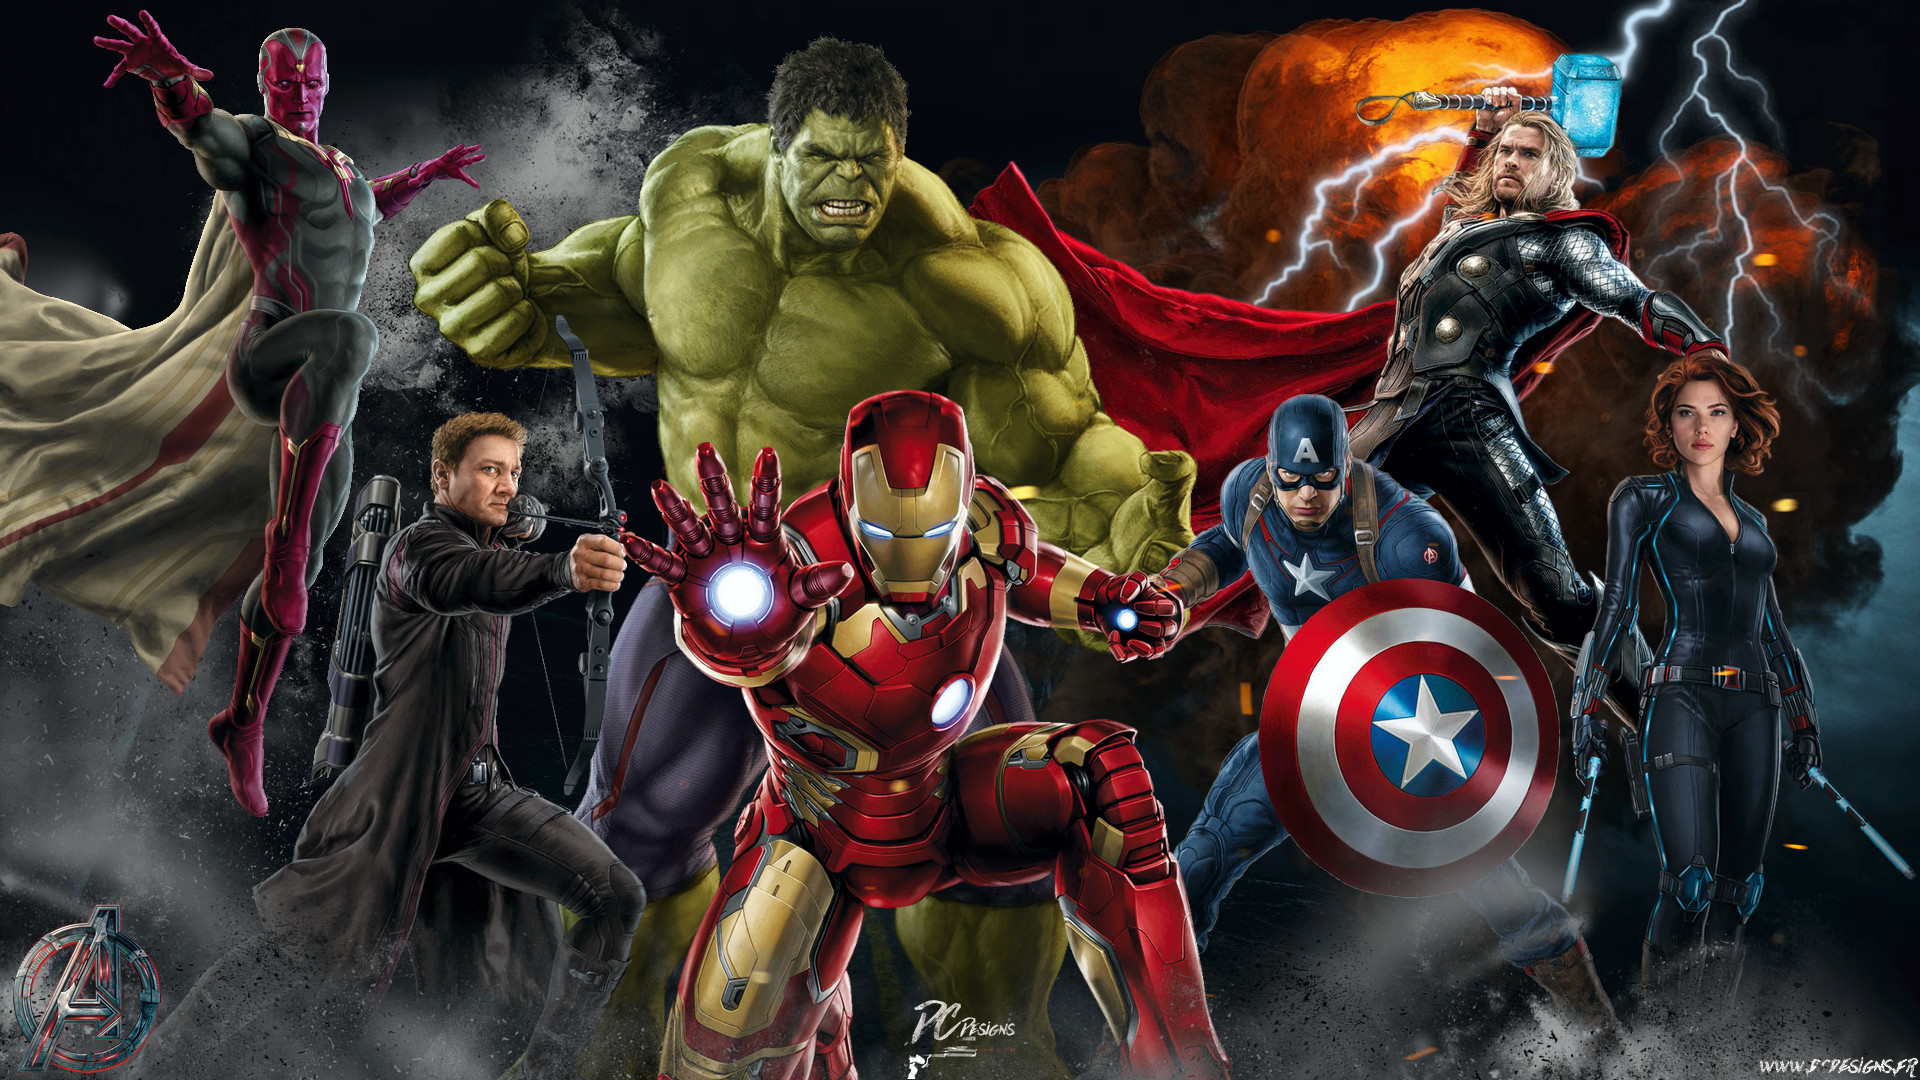 1920x1080 Avengers Age Of Ultron Wallpaper By Sachso74 On DeviantArt